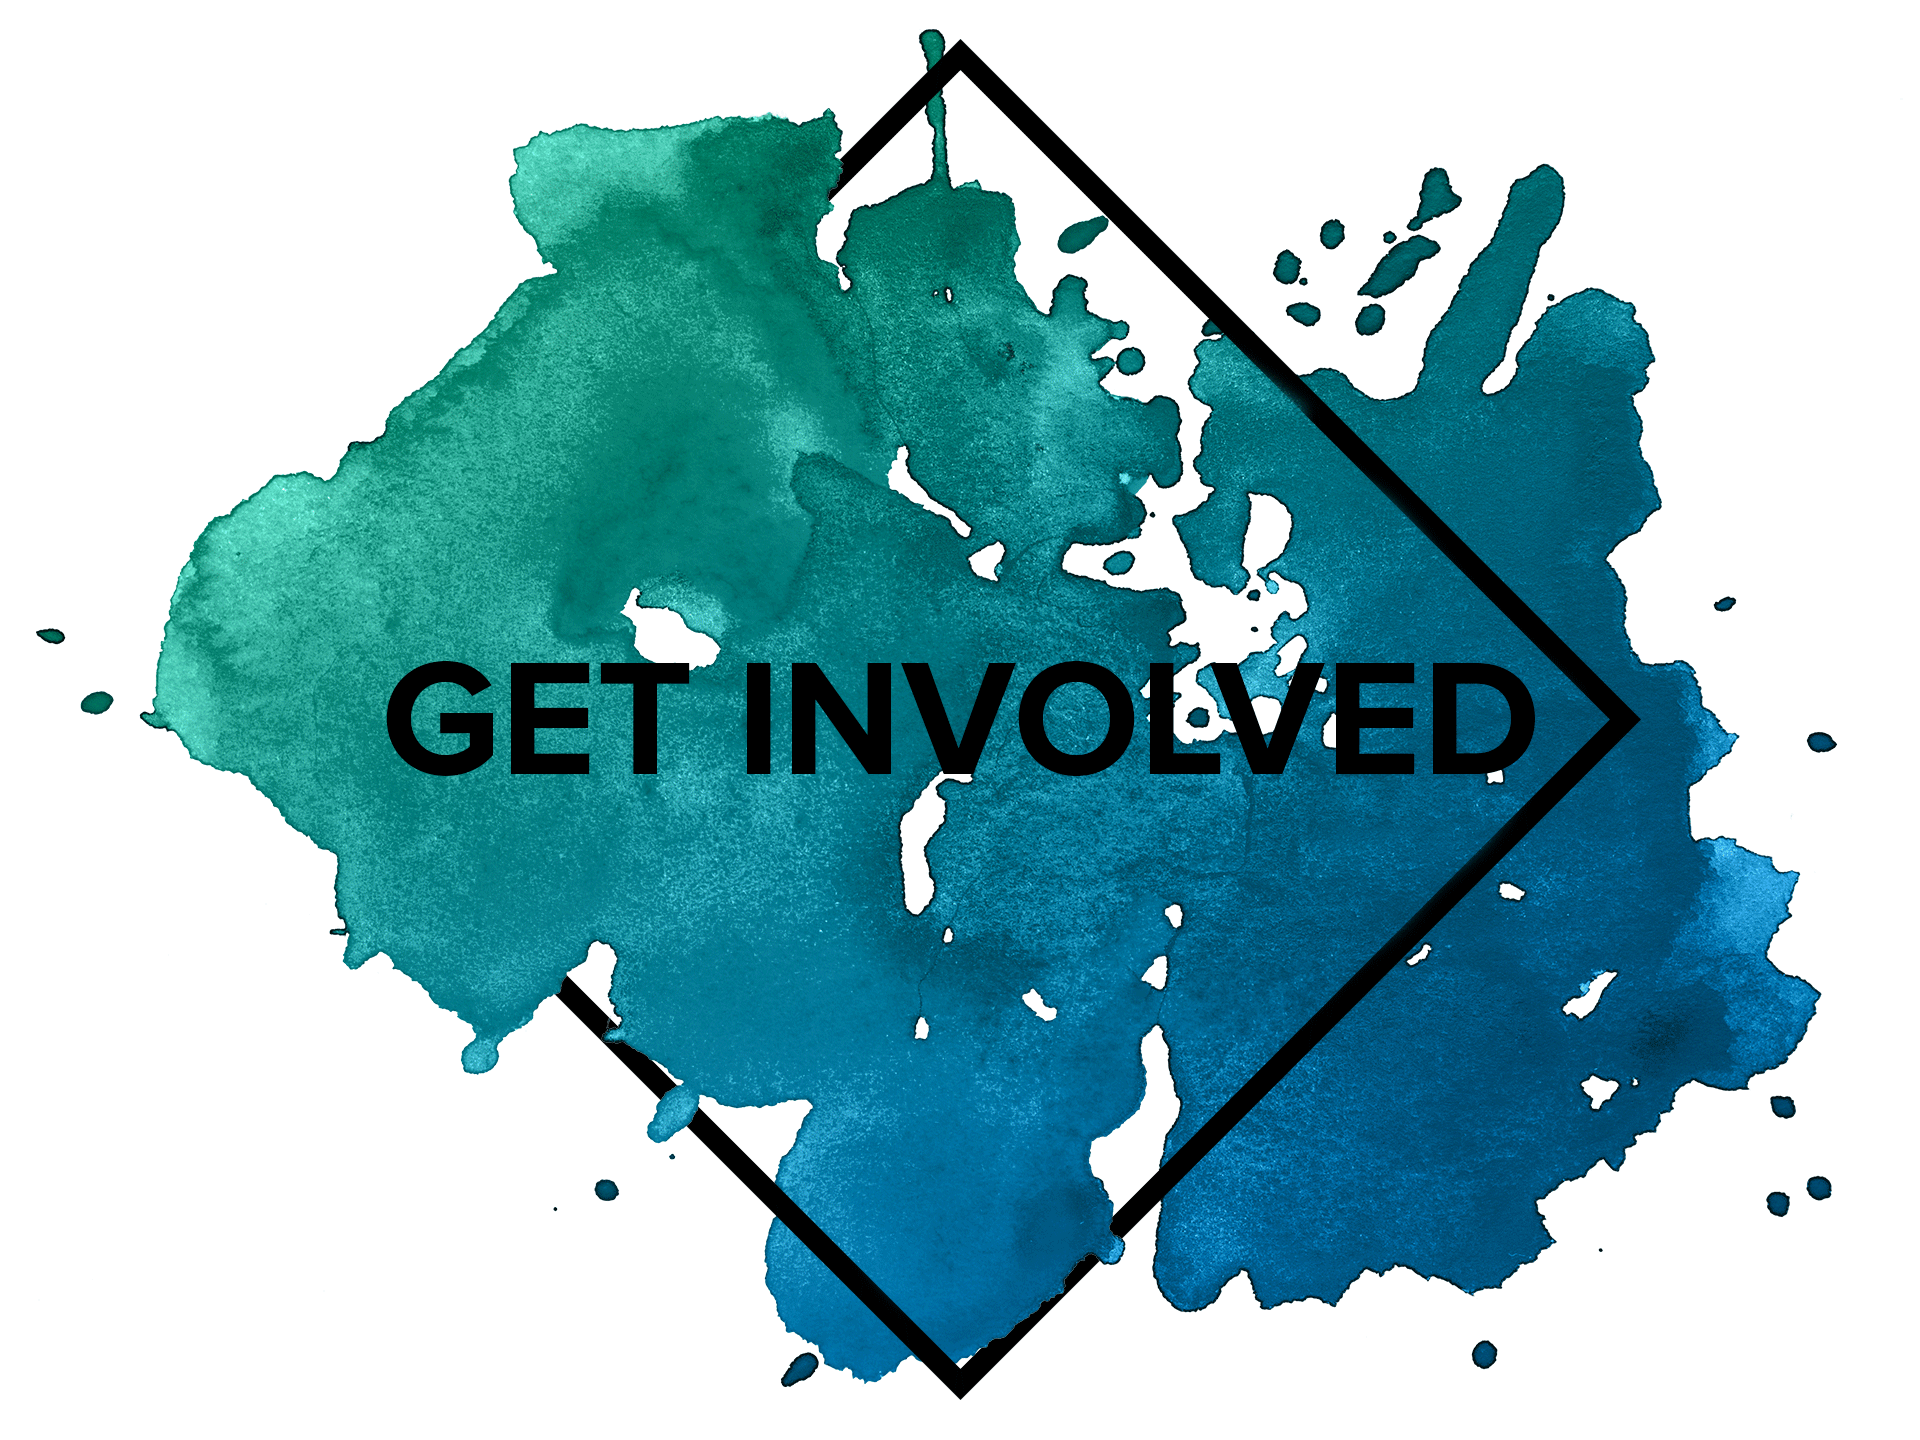 front-page-Get-Involved.png